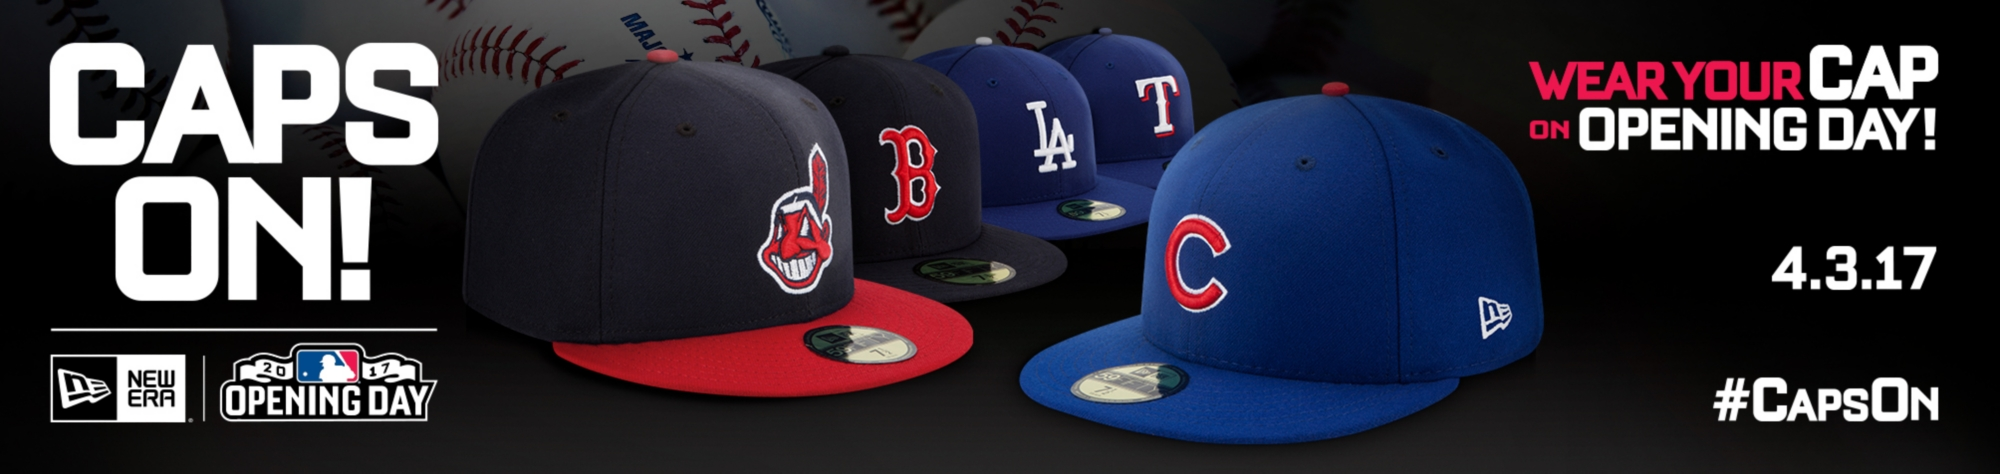 MLB New Era Hats